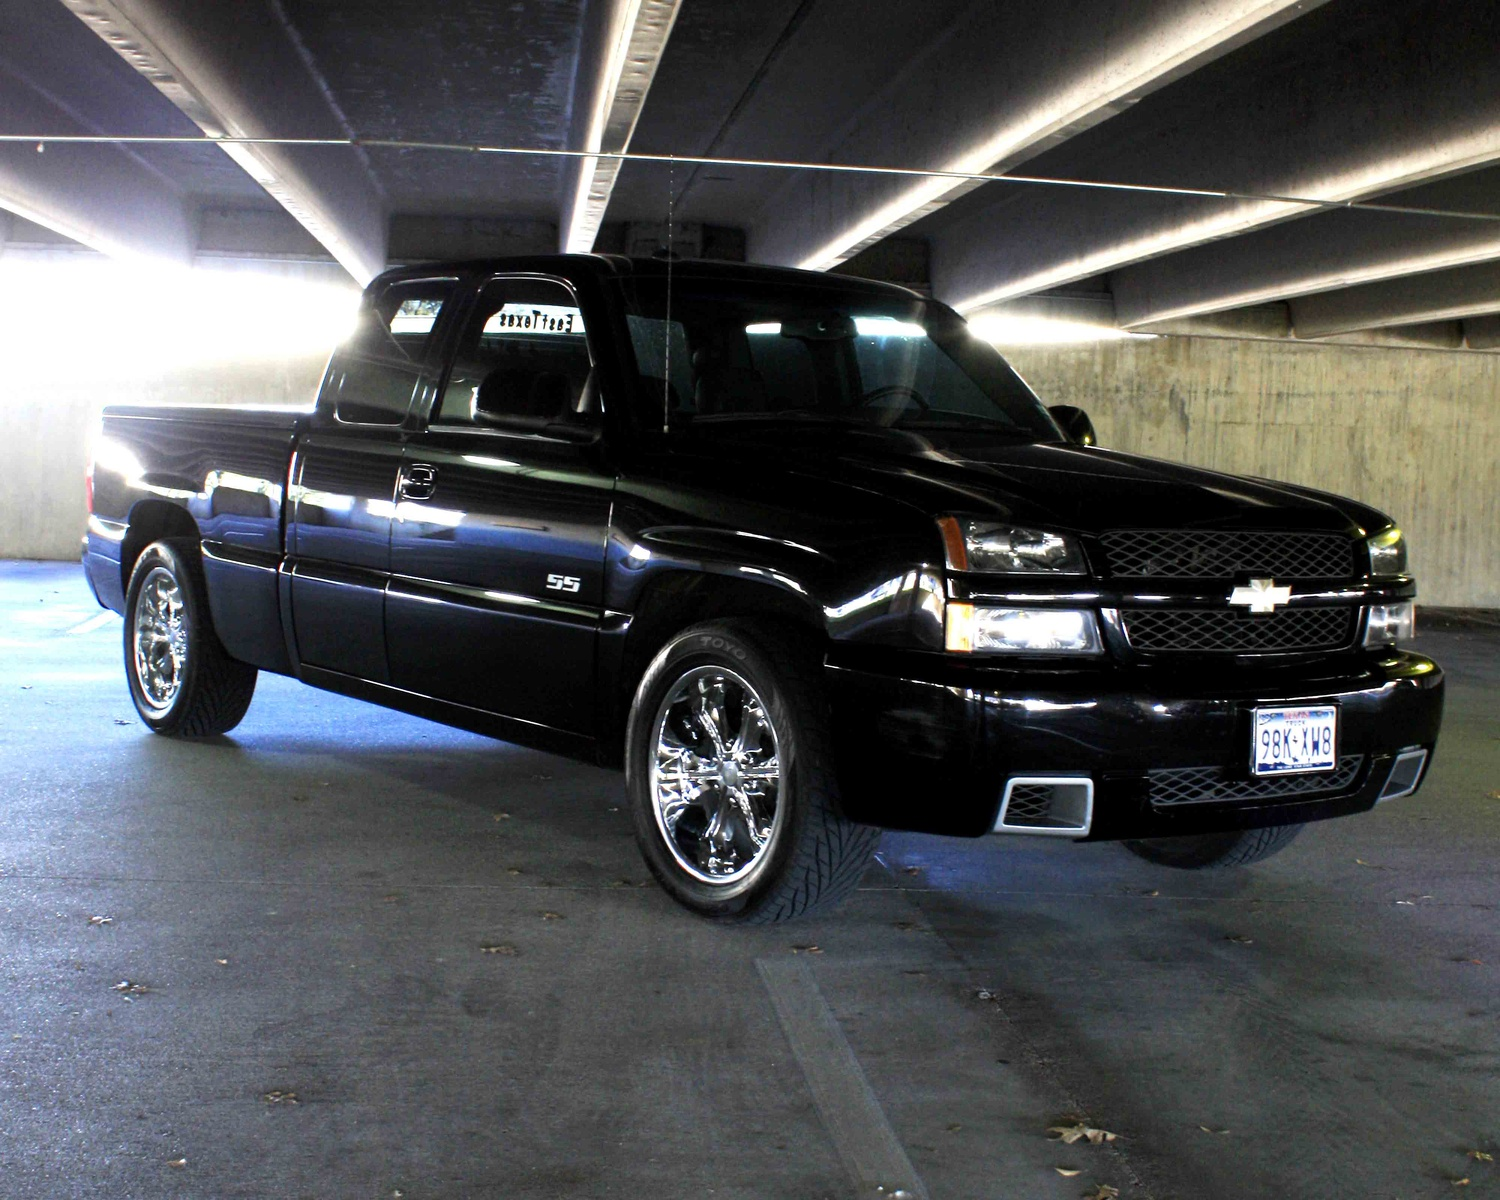 2003 chevrolet silverado 1500hd specifications autos post. Black Bedroom Furniture Sets. Home Design Ideas